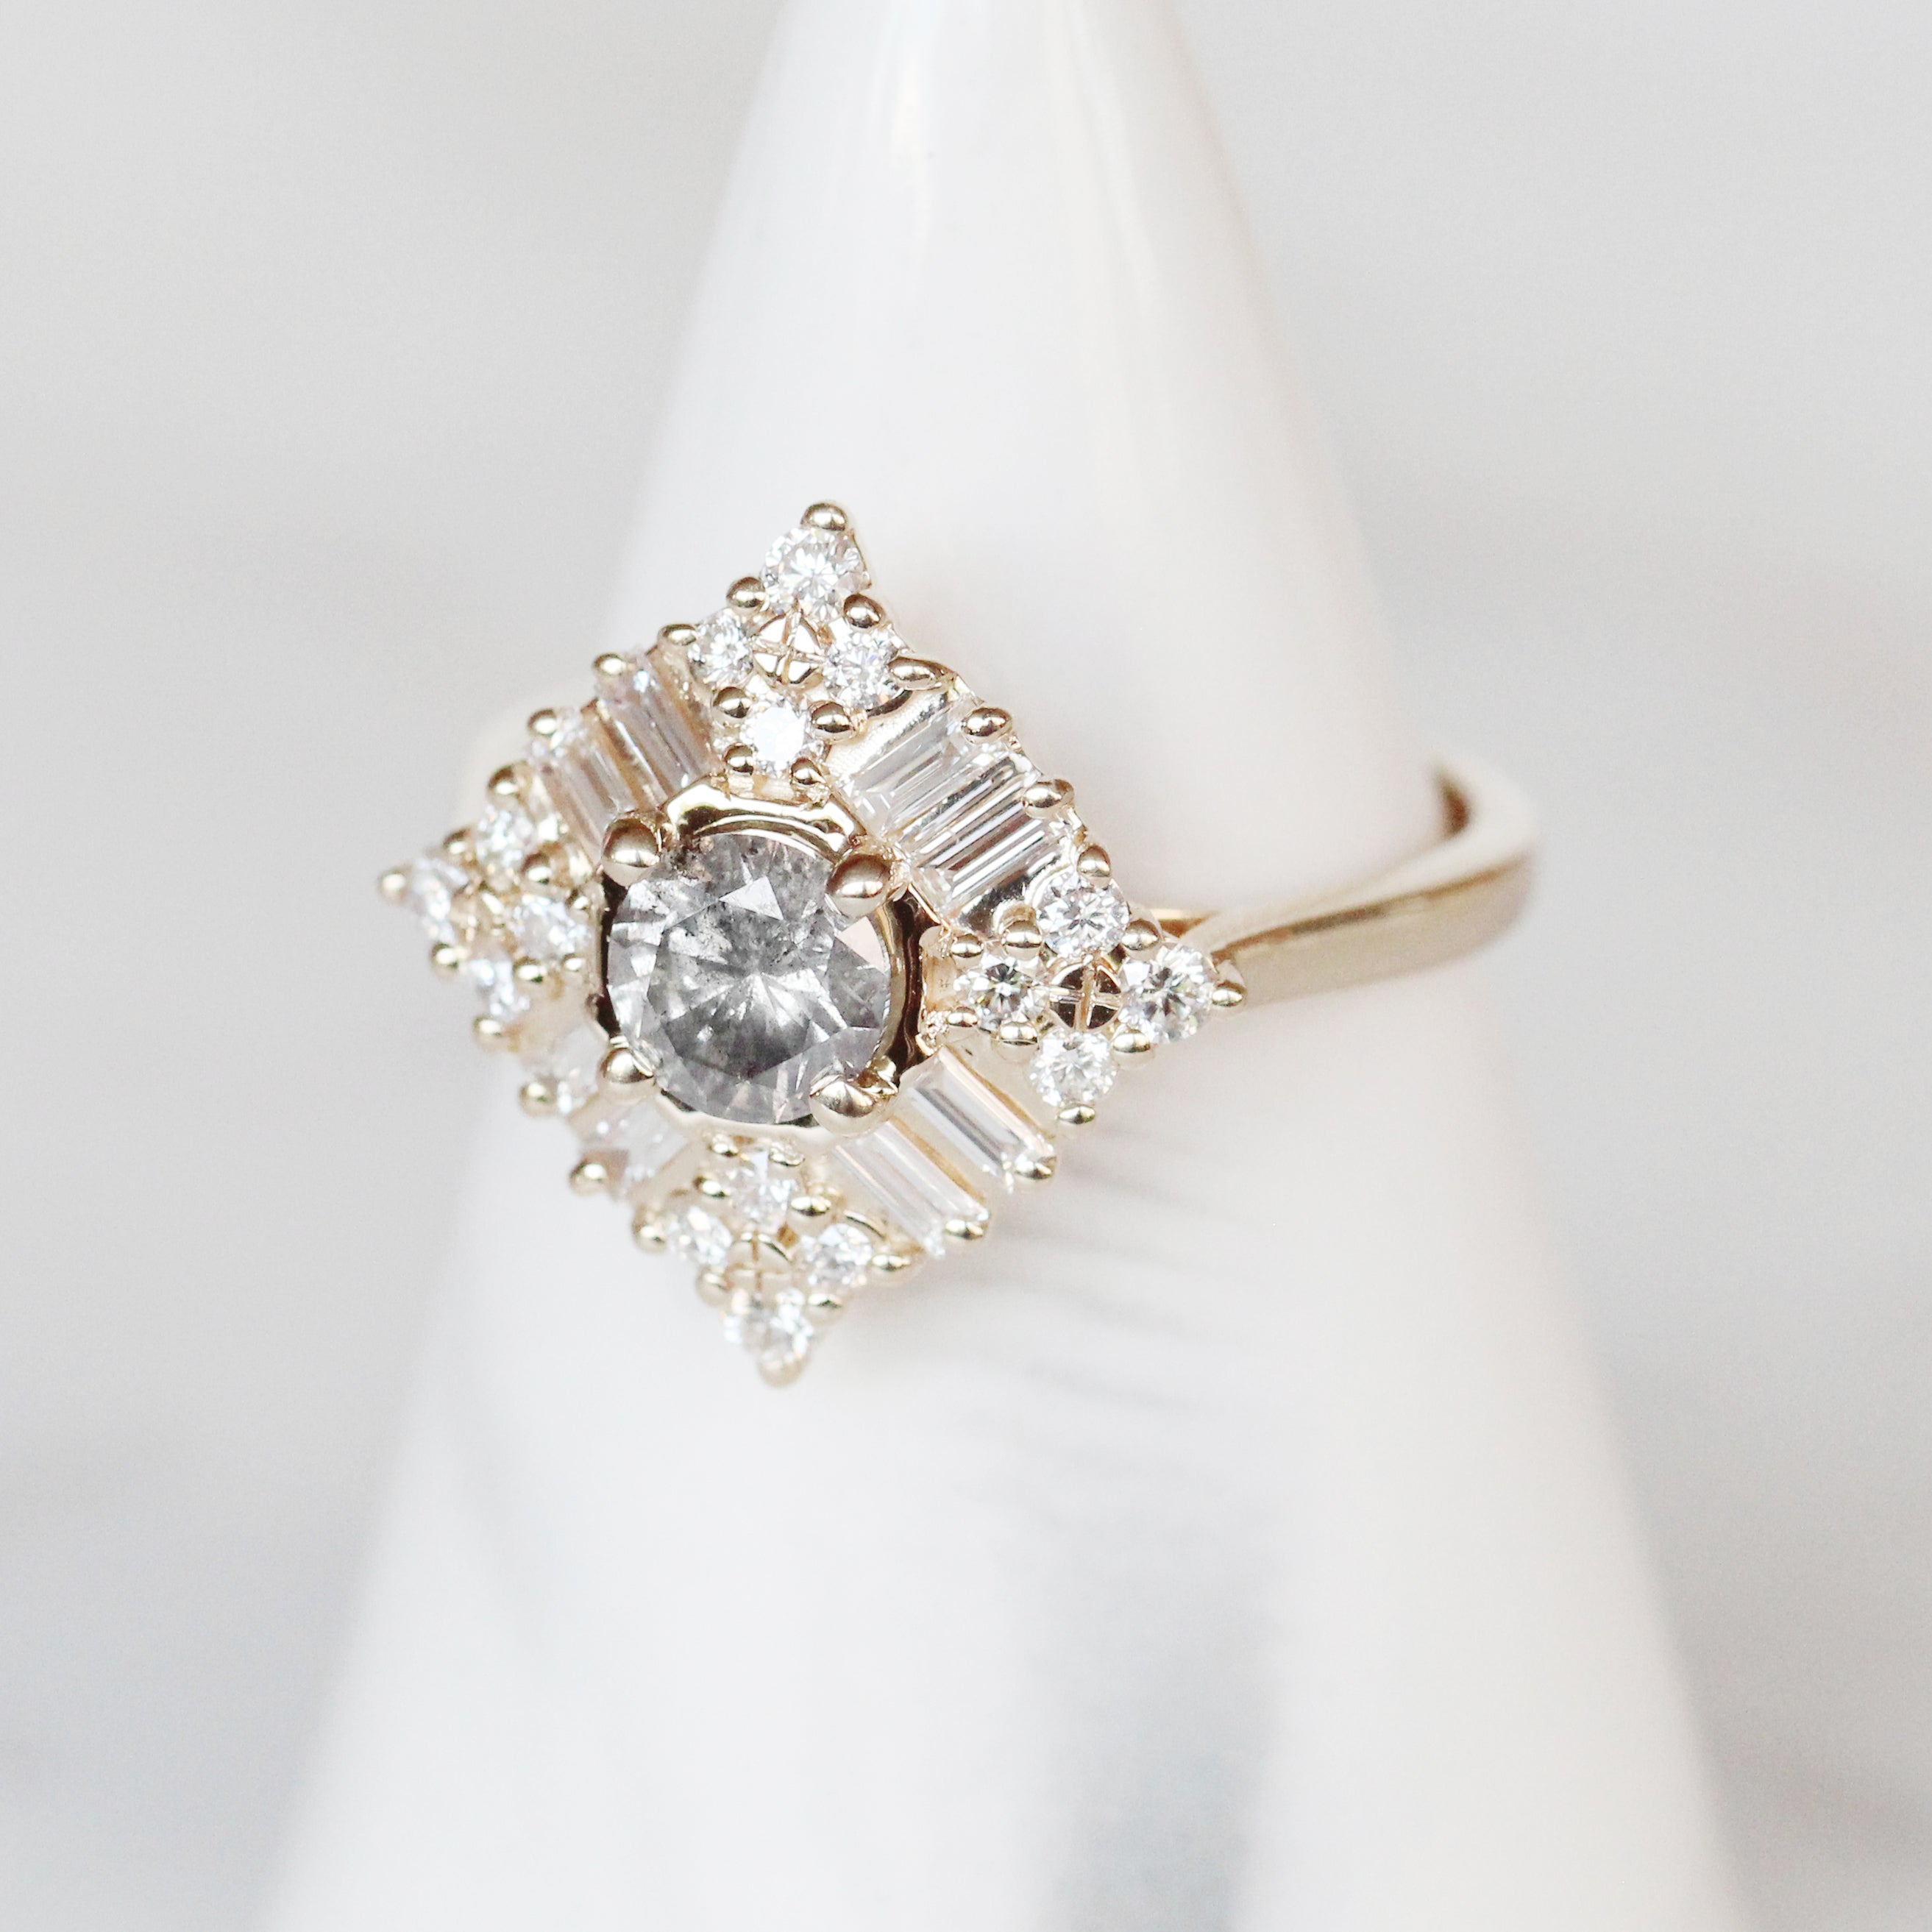 Winnifred Ring with a Celestial Round Diamond and Halo in 14k Yellow Gold - Ready to Size and Ship - Midwinter Co. Alternative Bridal Rings and Modern Fine Jewelry